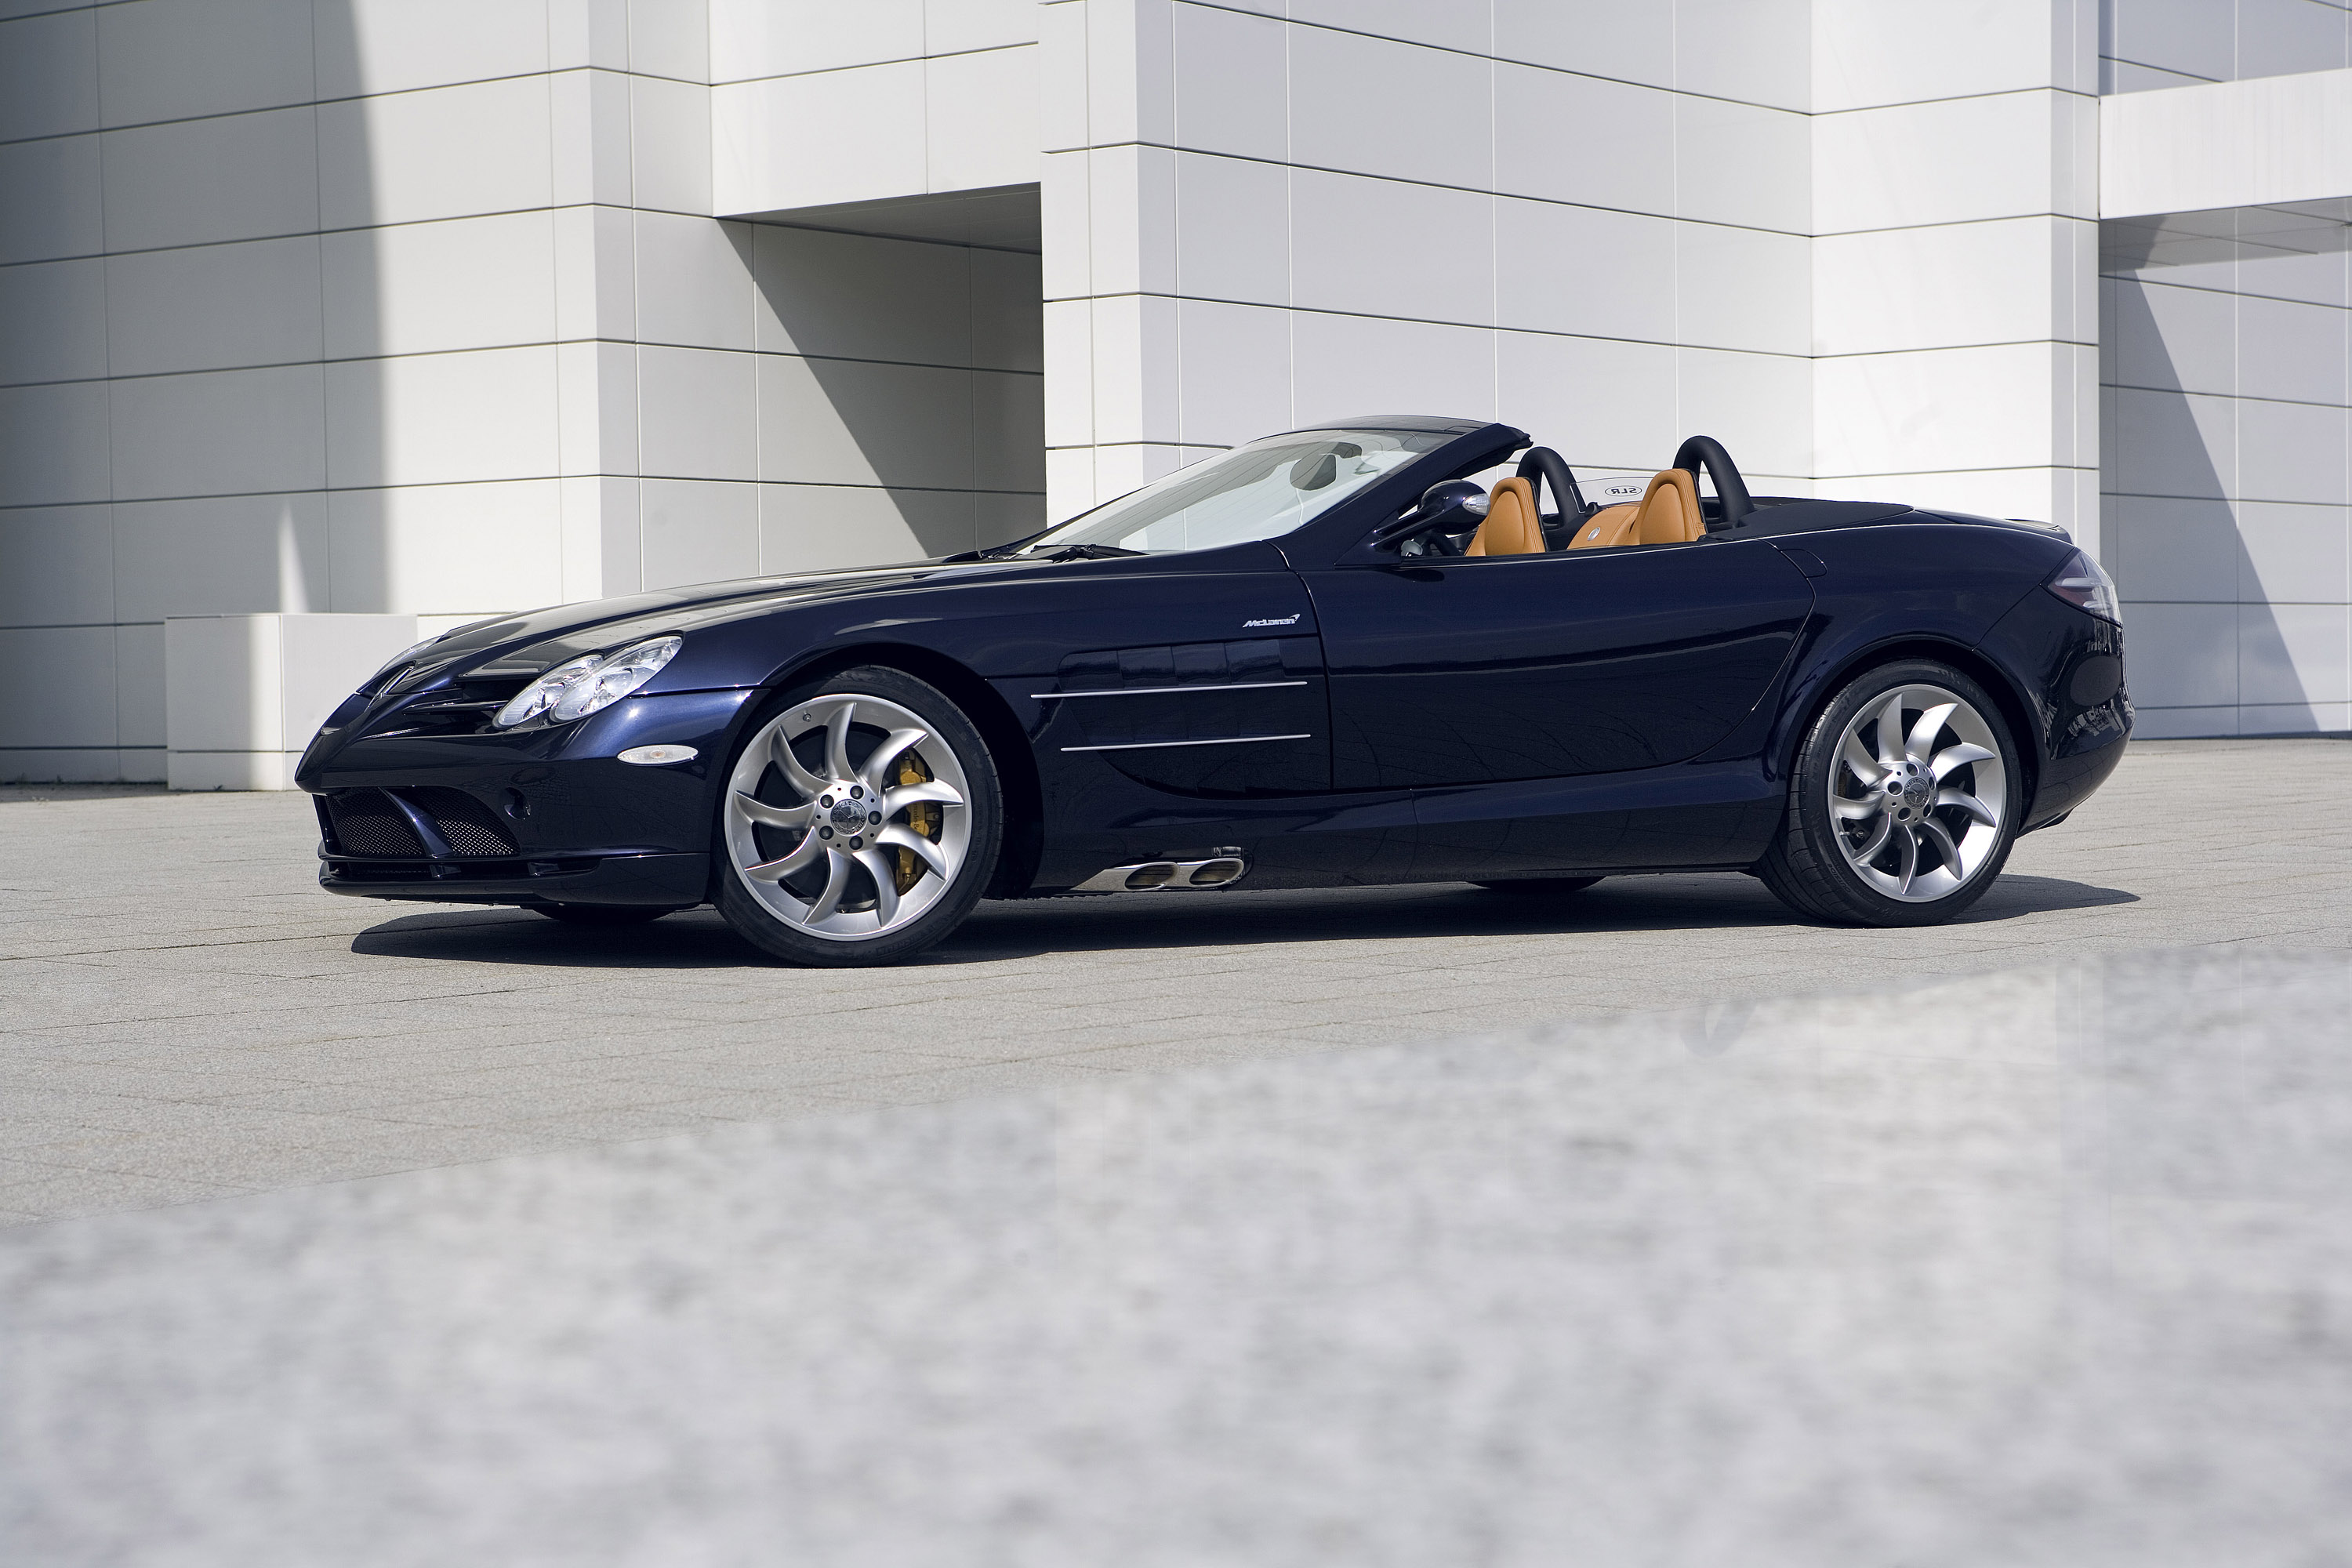 Mercedes-Benz SLR McLaren Roadster photo #1